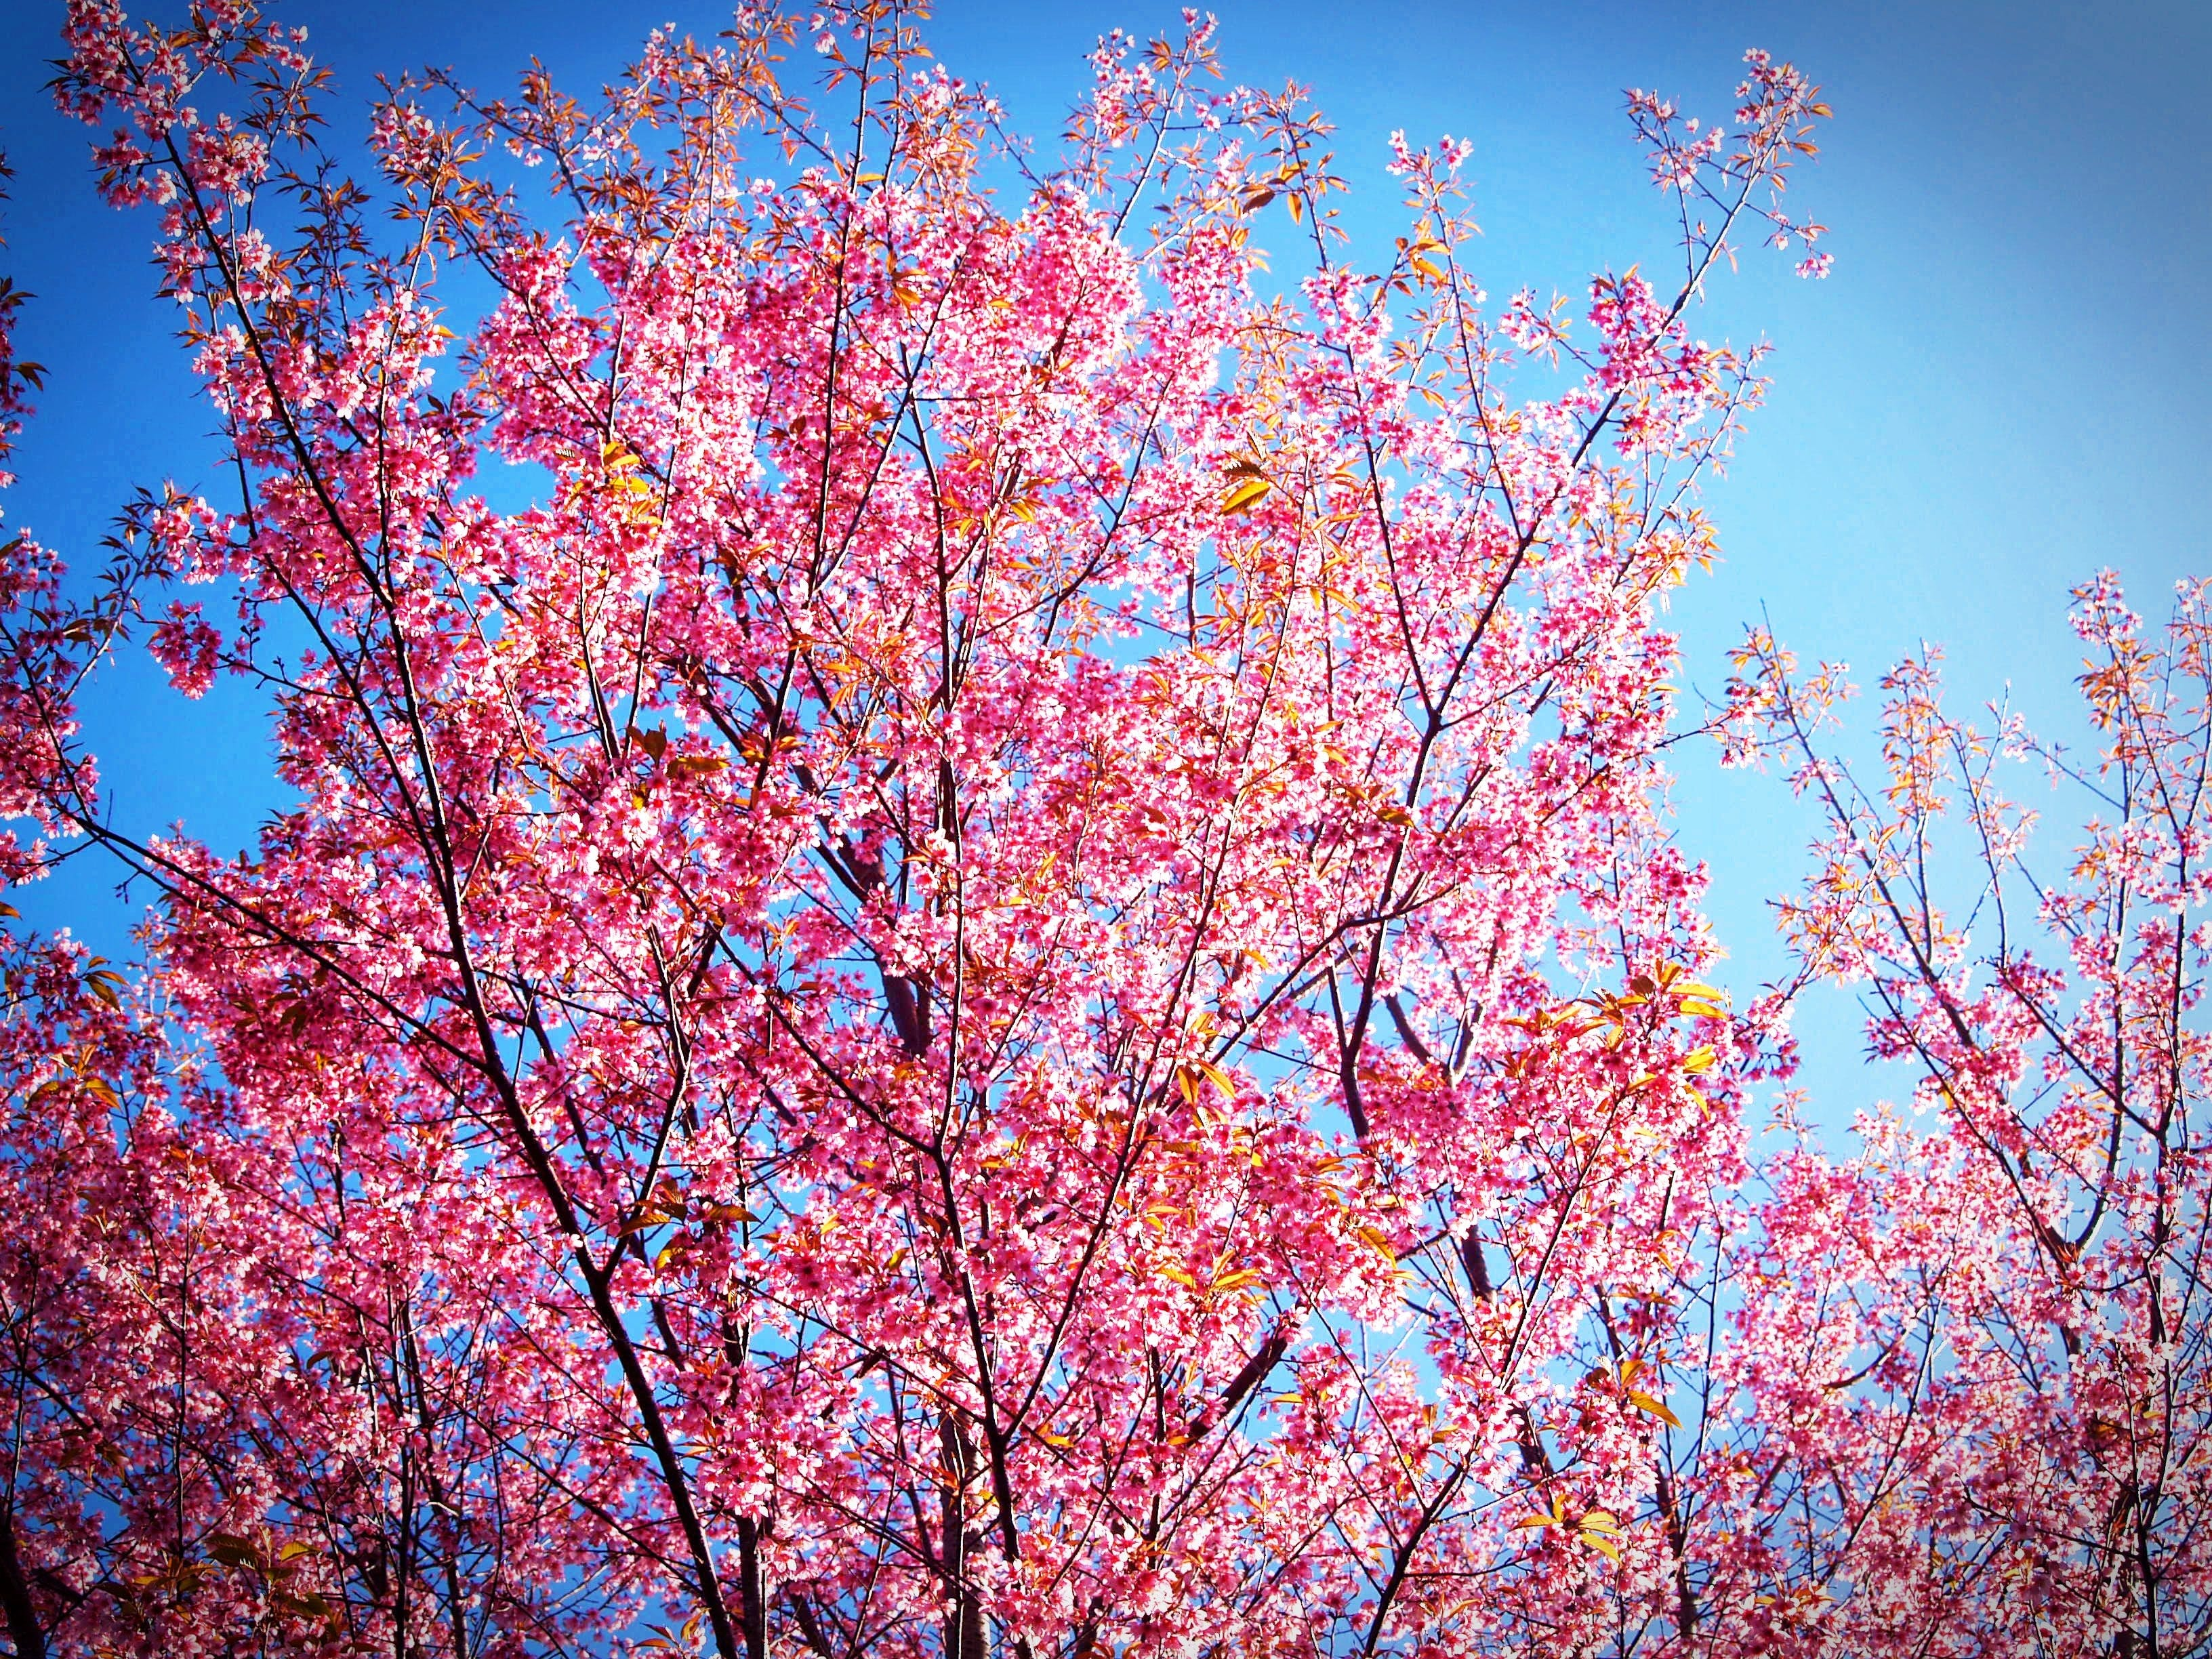 Pink and Yellow Leafed Tree Under Blue Sky during Daytime